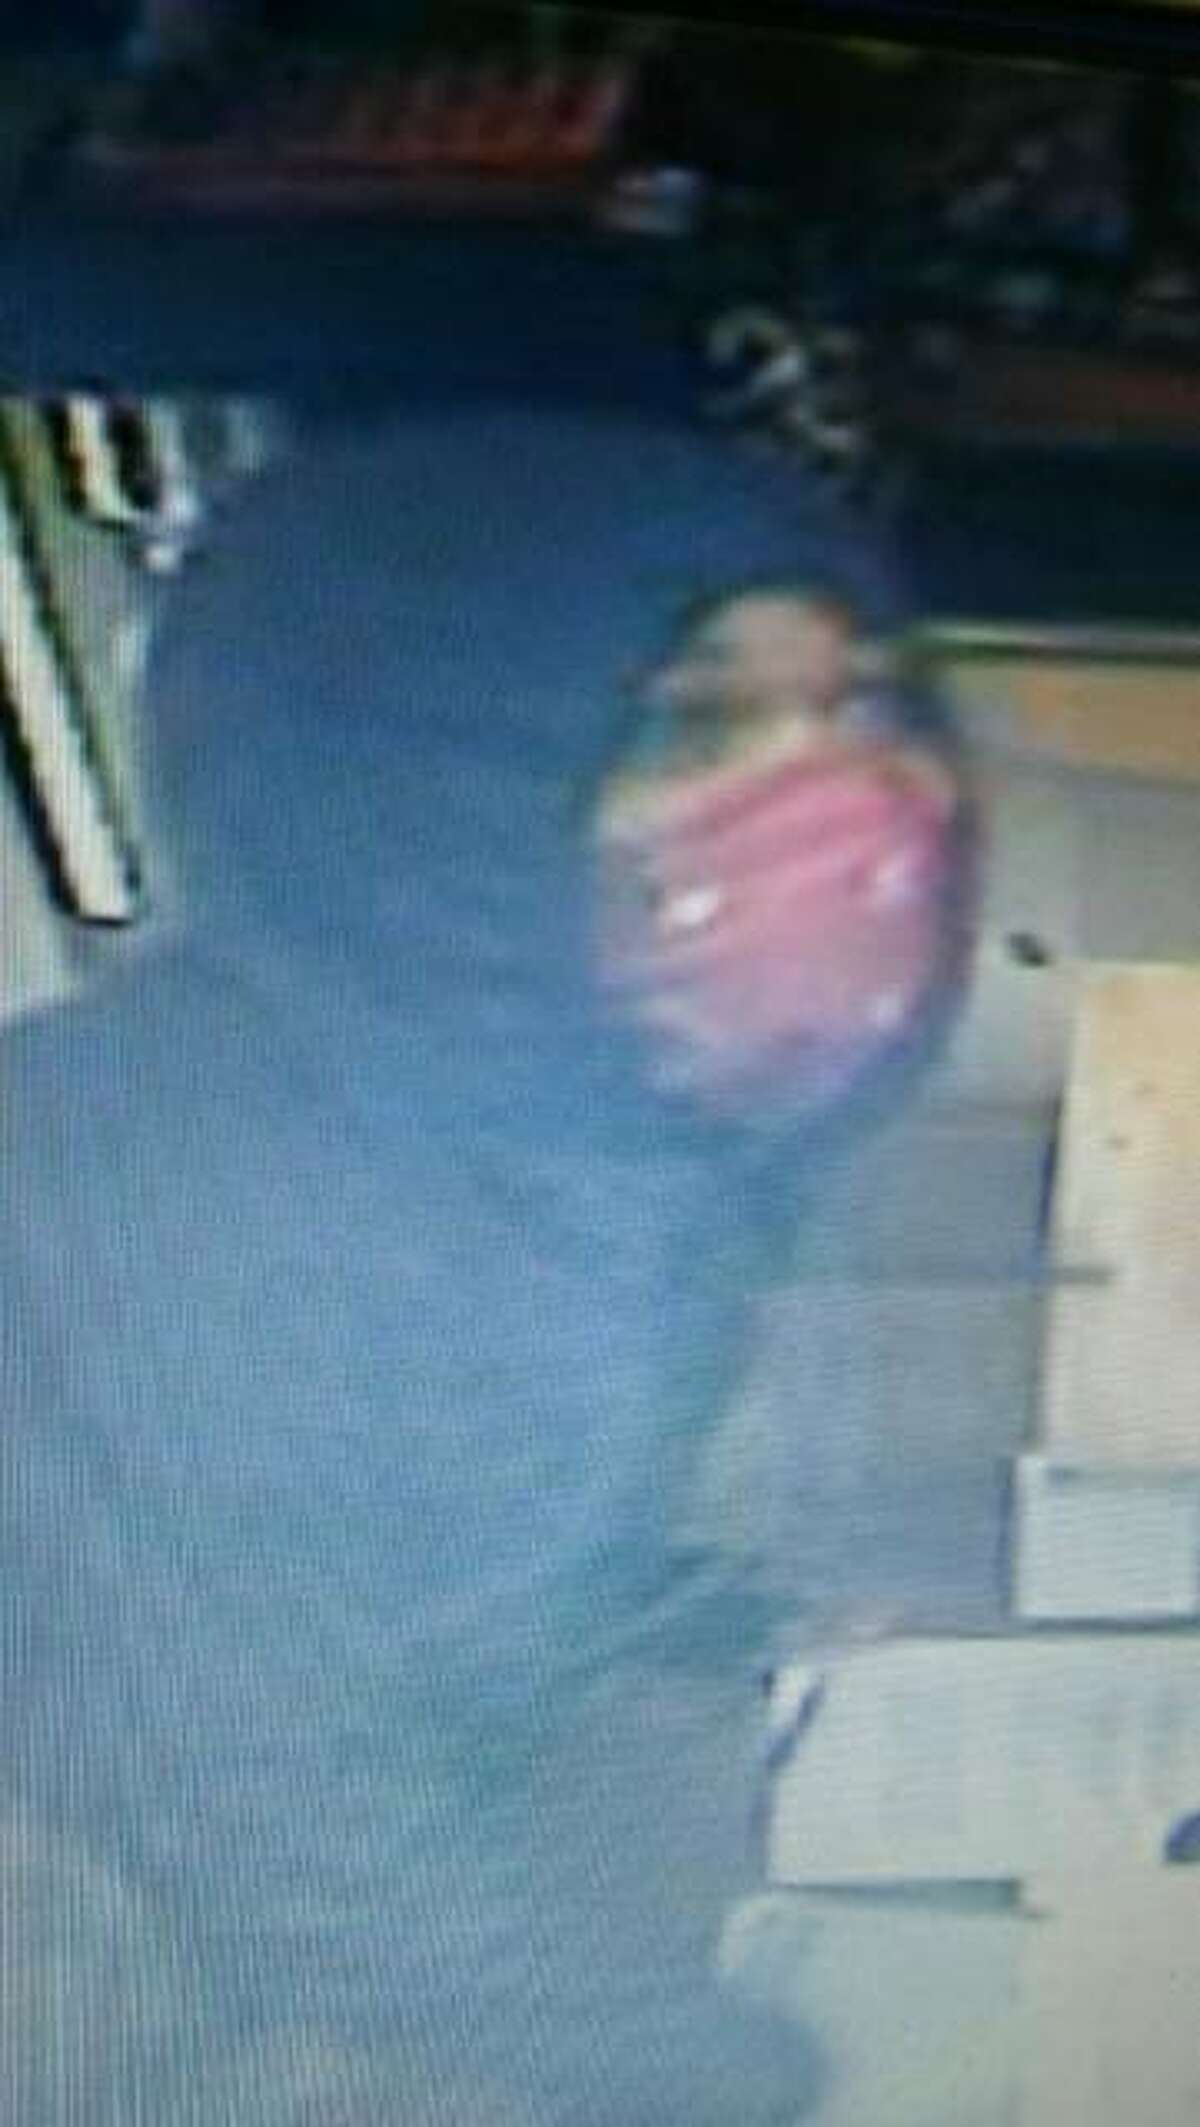 Photos of the alleged burglar inside Schwegel's, a family-owned business in Alton.